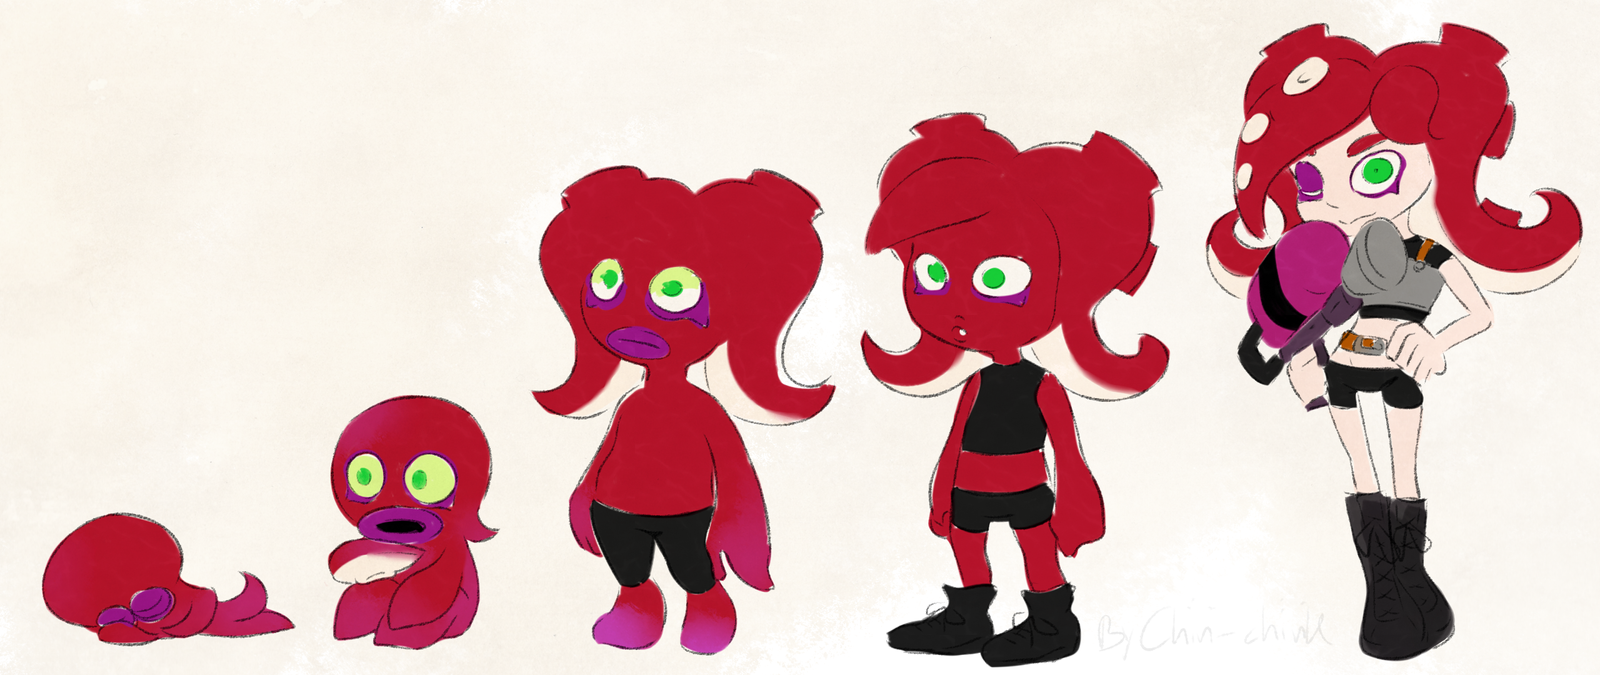 Splatoon Octolings Grow Up Progression By Chivi Chivik On